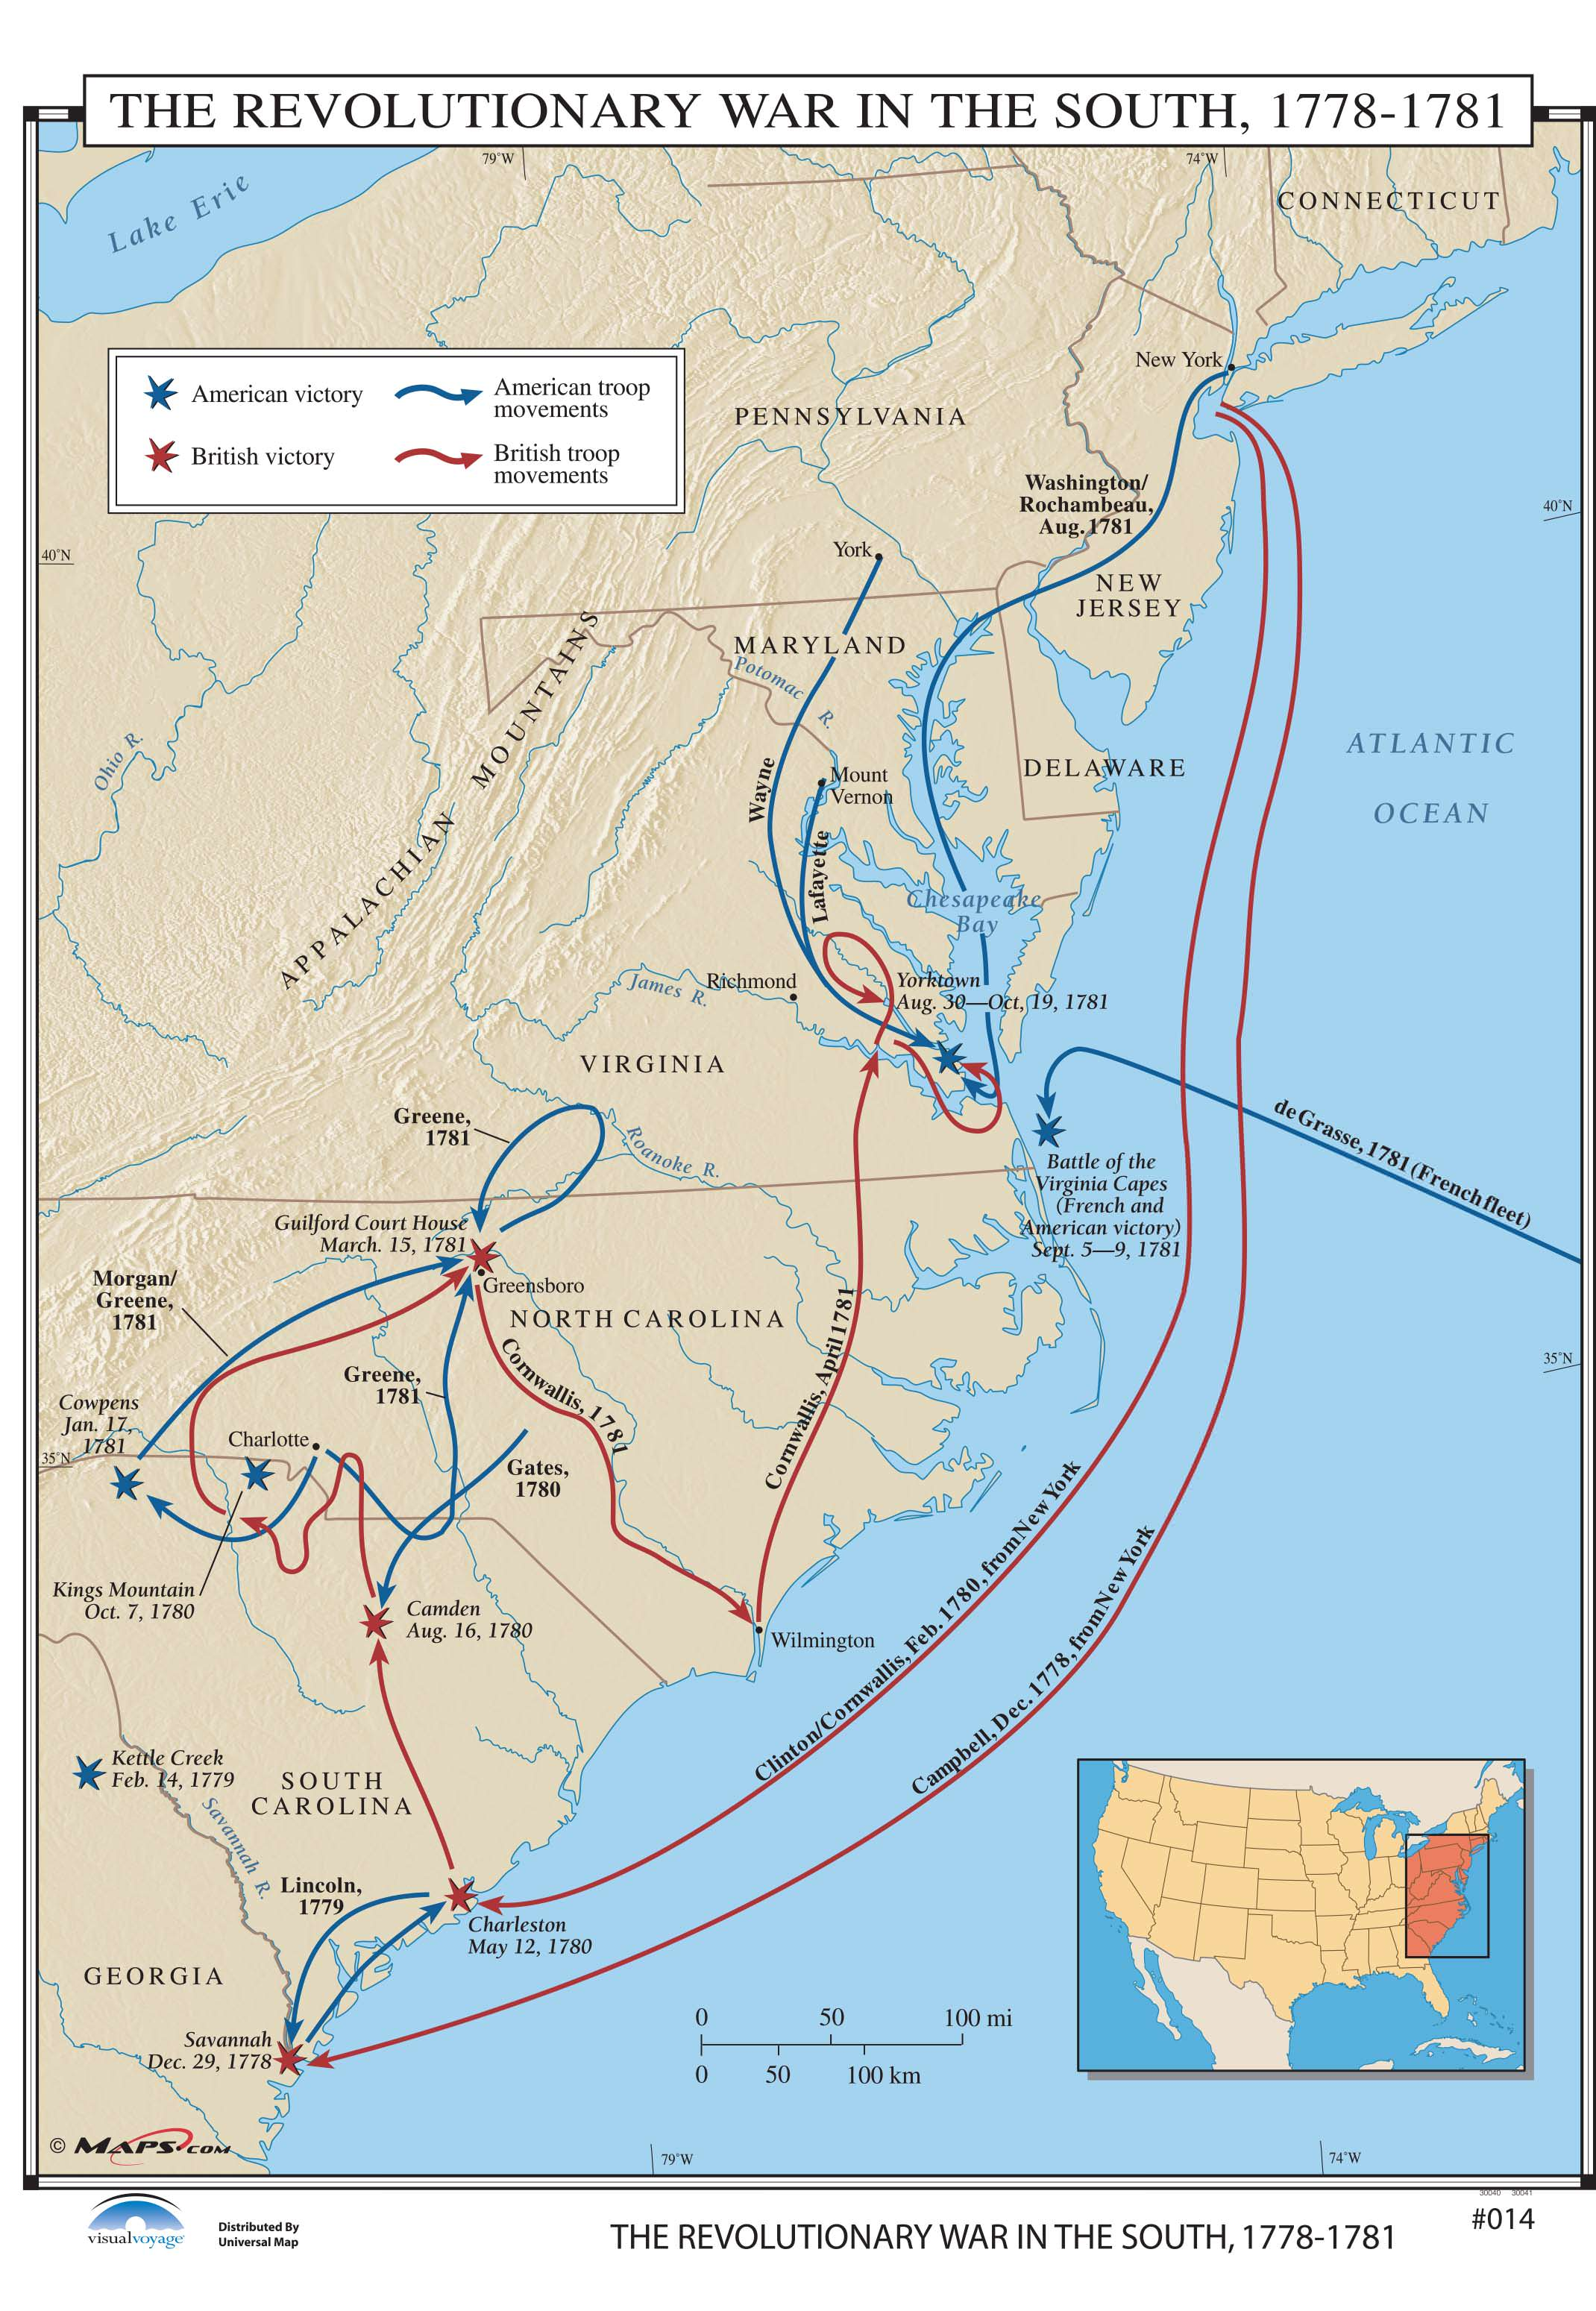 014 The Revolutionary War in the South, 1778-1781 – KAPPA MAP GROUP